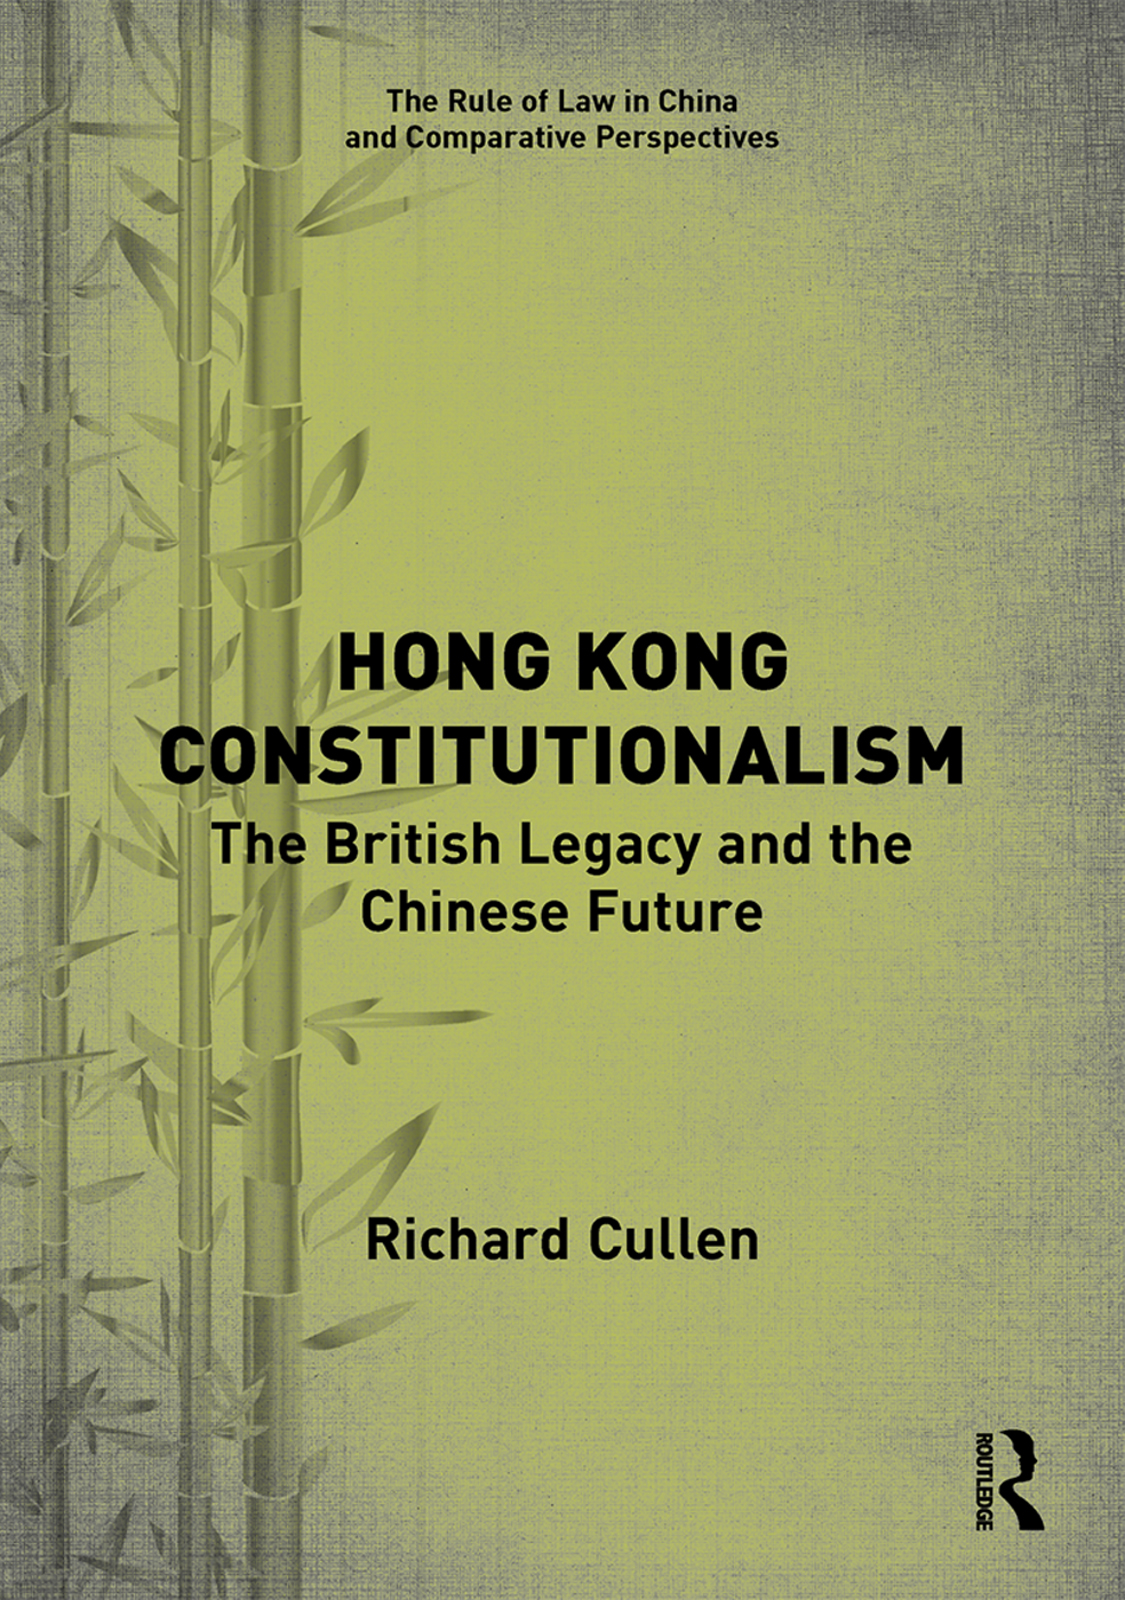 Hong Kong Constitutionalism: The British Legacy and the Chinese Future book cover